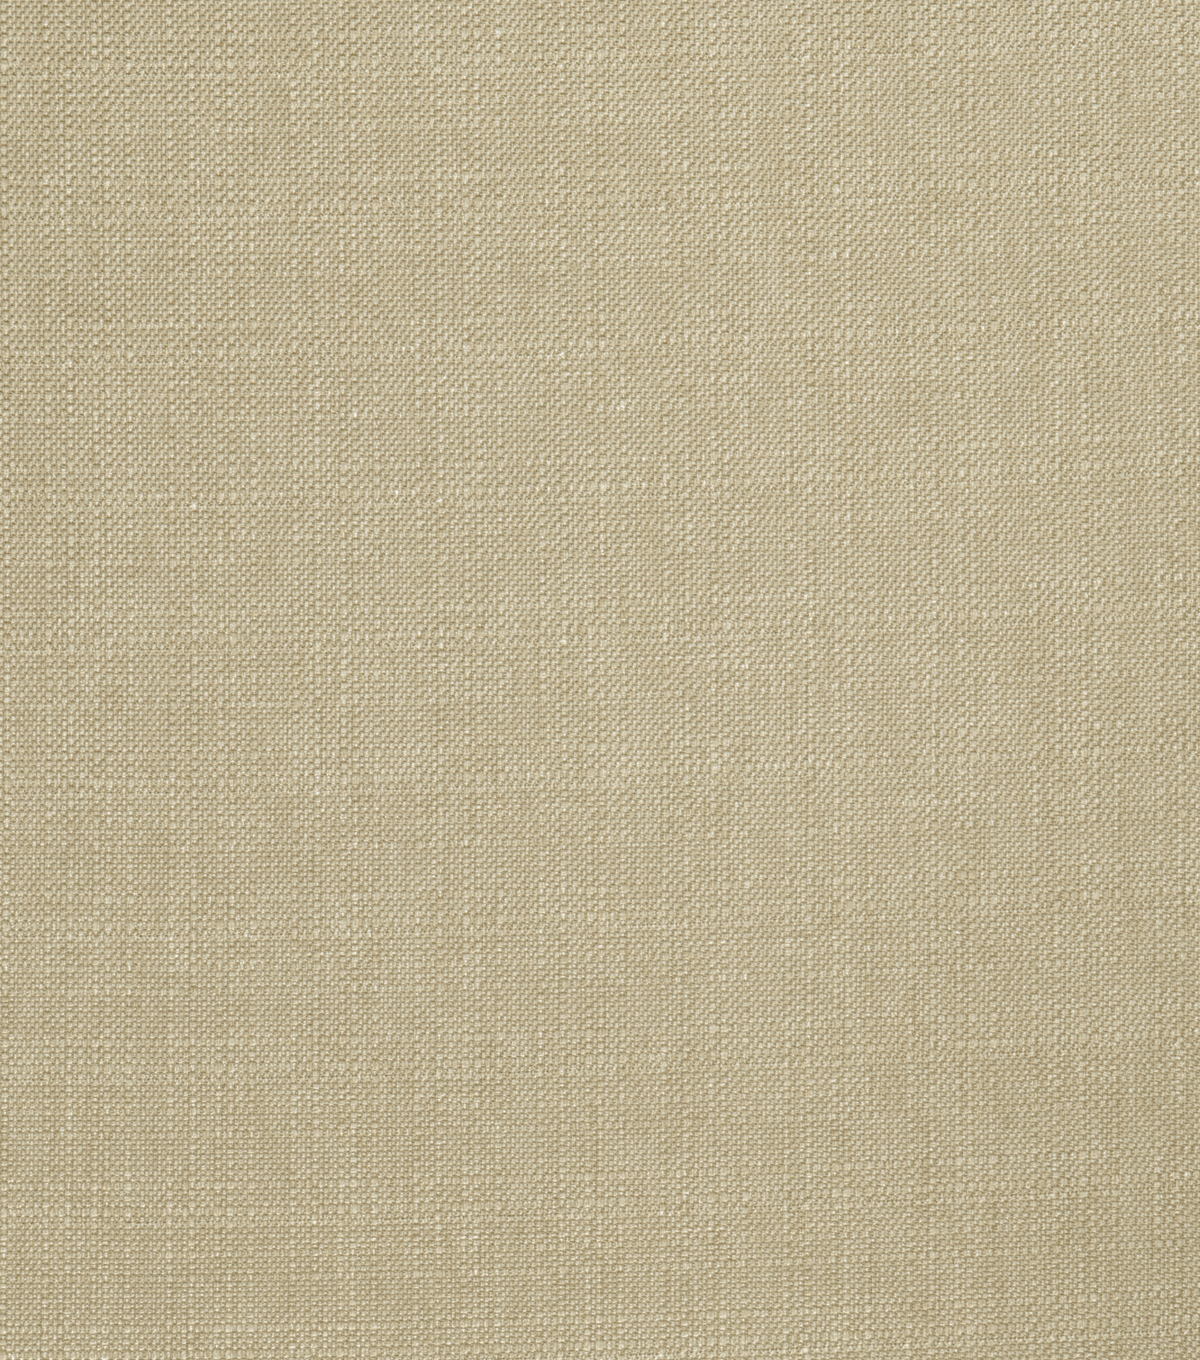 Home Decor 8x8 Fabric Swatch-Eaton Square Roberta Raffia